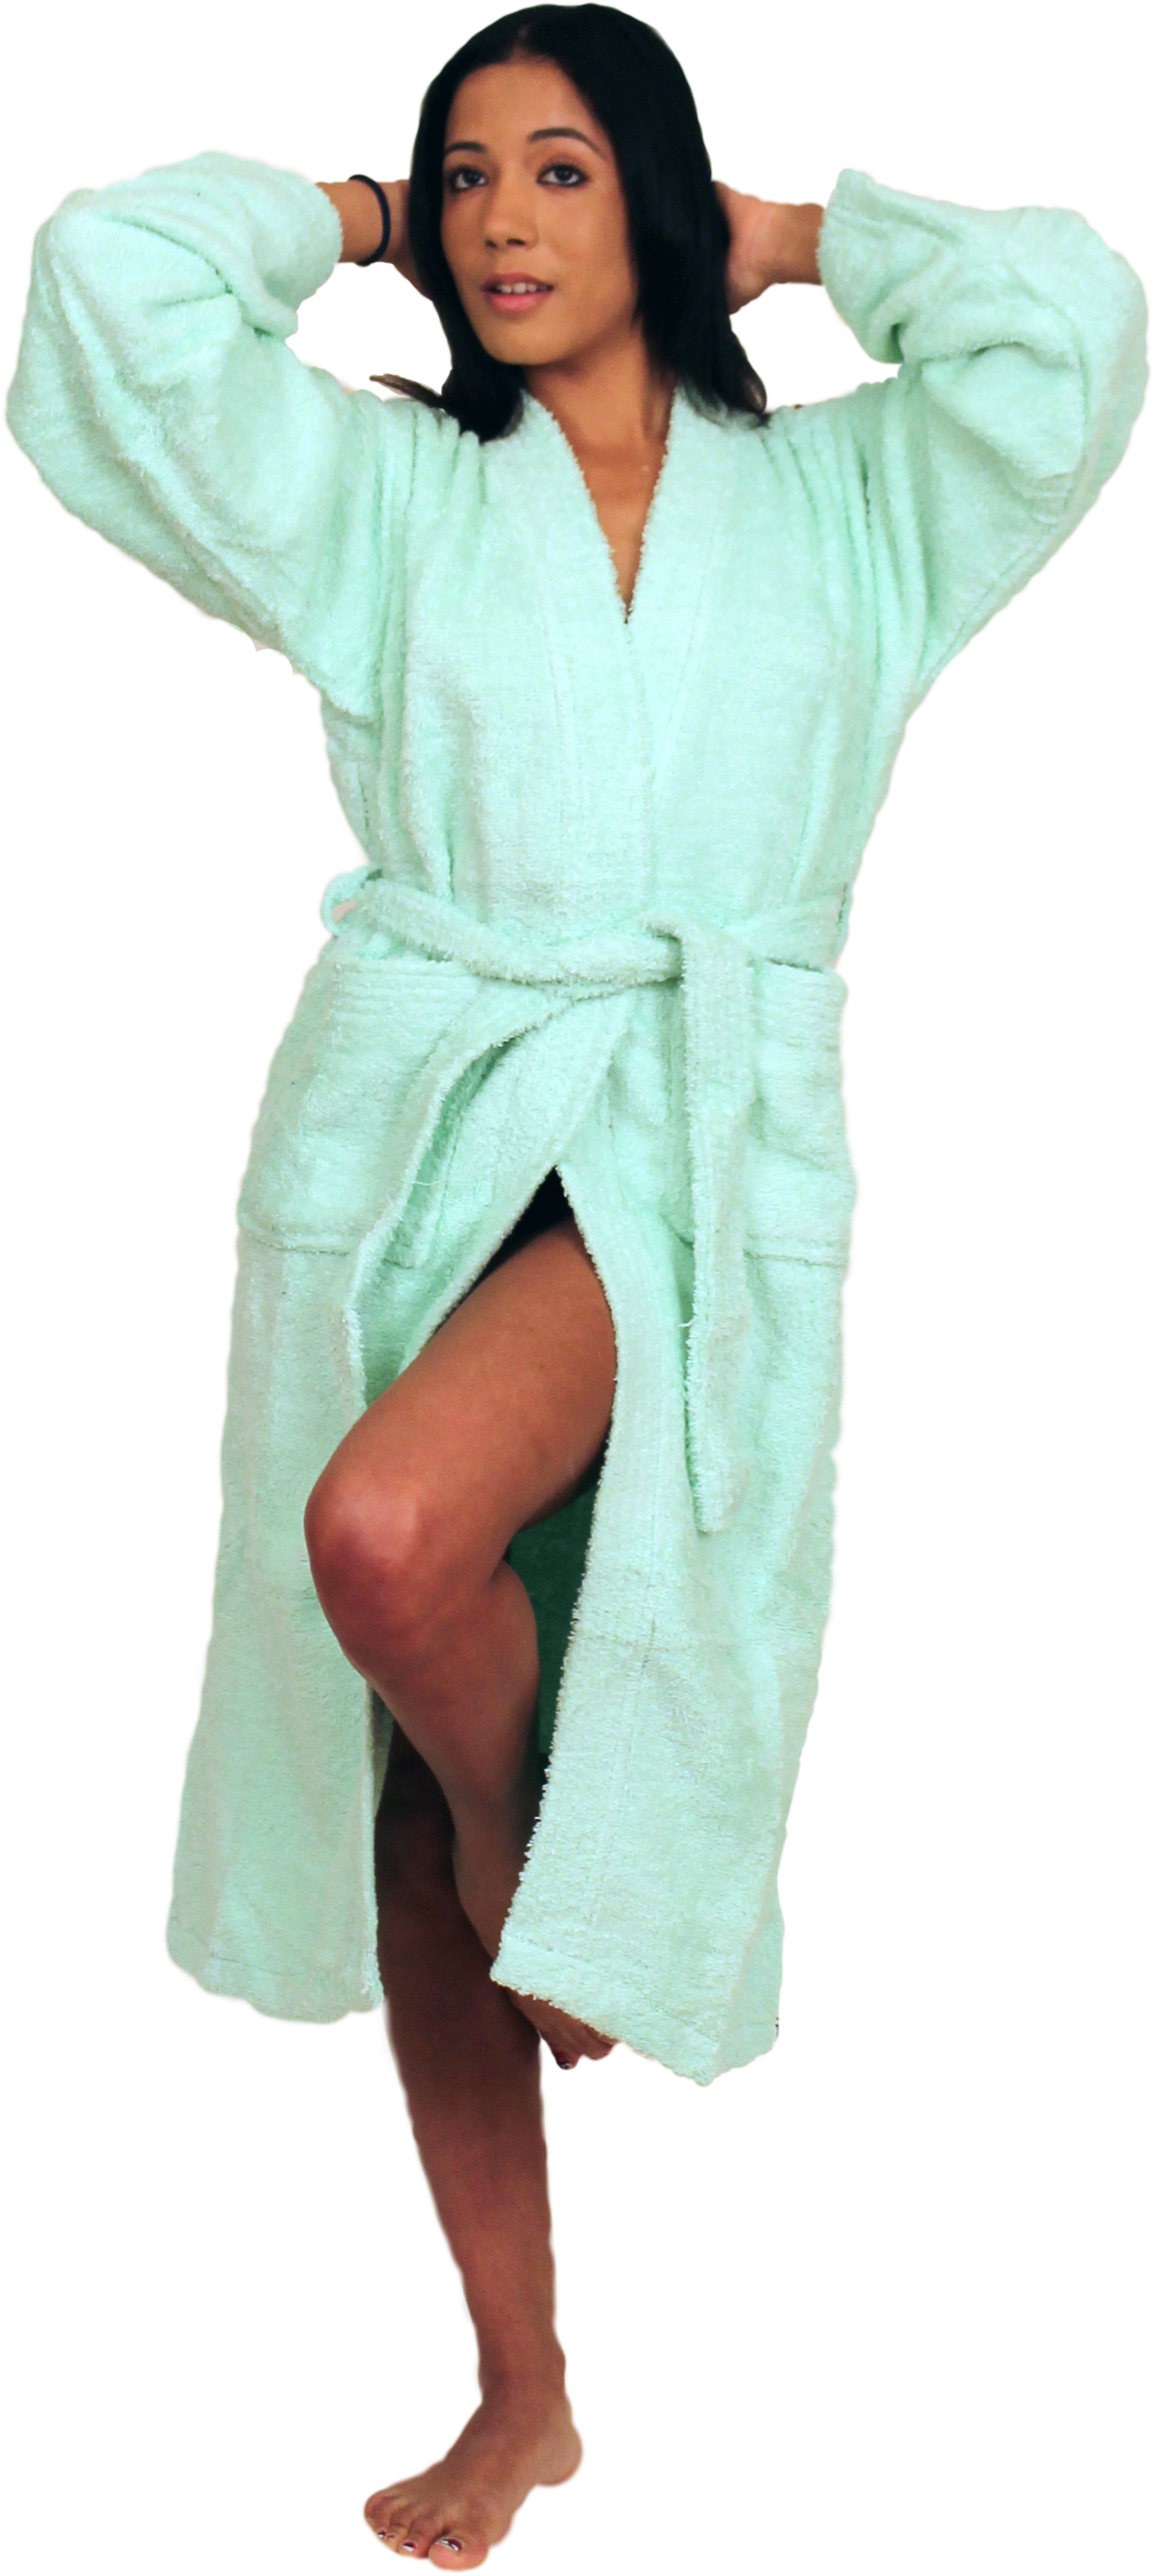 Men's and Women's Loop Terry Kimono Robe  - $29.99 Colors: Mint-S/M Mint-Regular Mint-Plus($5) Navy-S/M Navy-Regular Navy-Plus(+5) Pink-S/M Pink-Regular Pink-Plus(+5) Teal-S/M Teal-Regular Teal-Plus(+5) White-S/M White-Plus(+$5). Sizes: